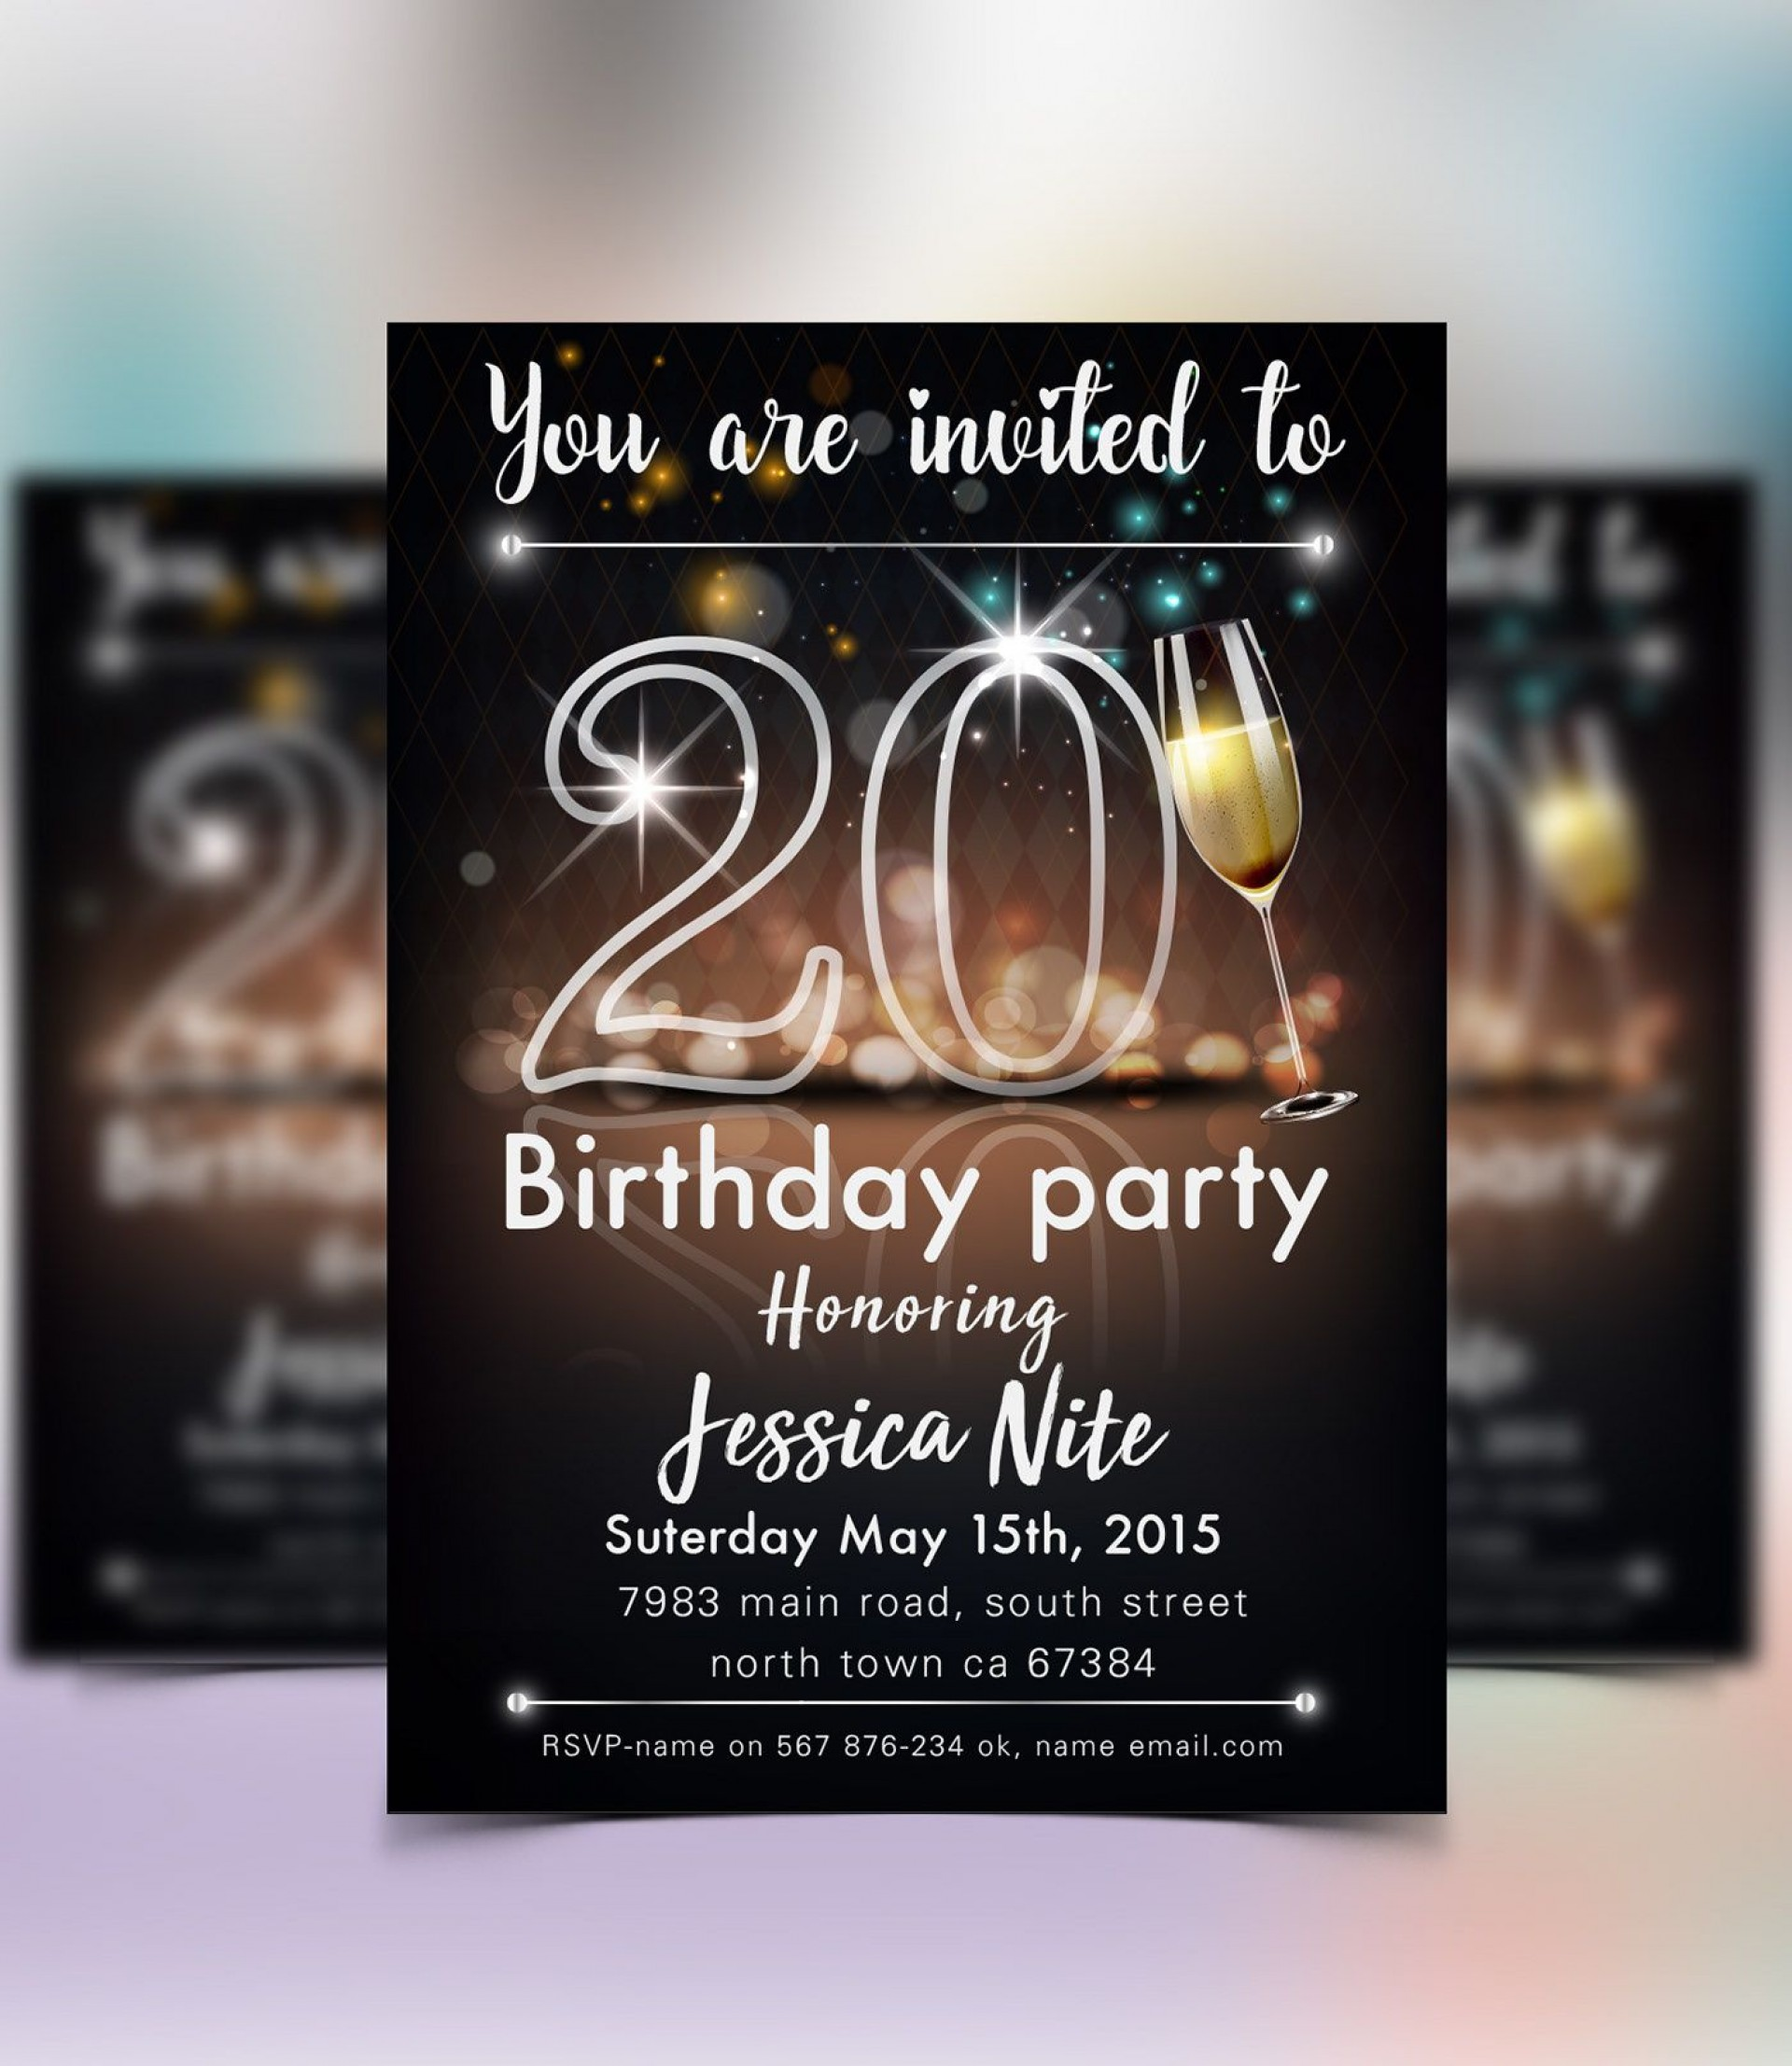 004 Phenomenal Save The Date Flyer Template Sample  Word Event1920